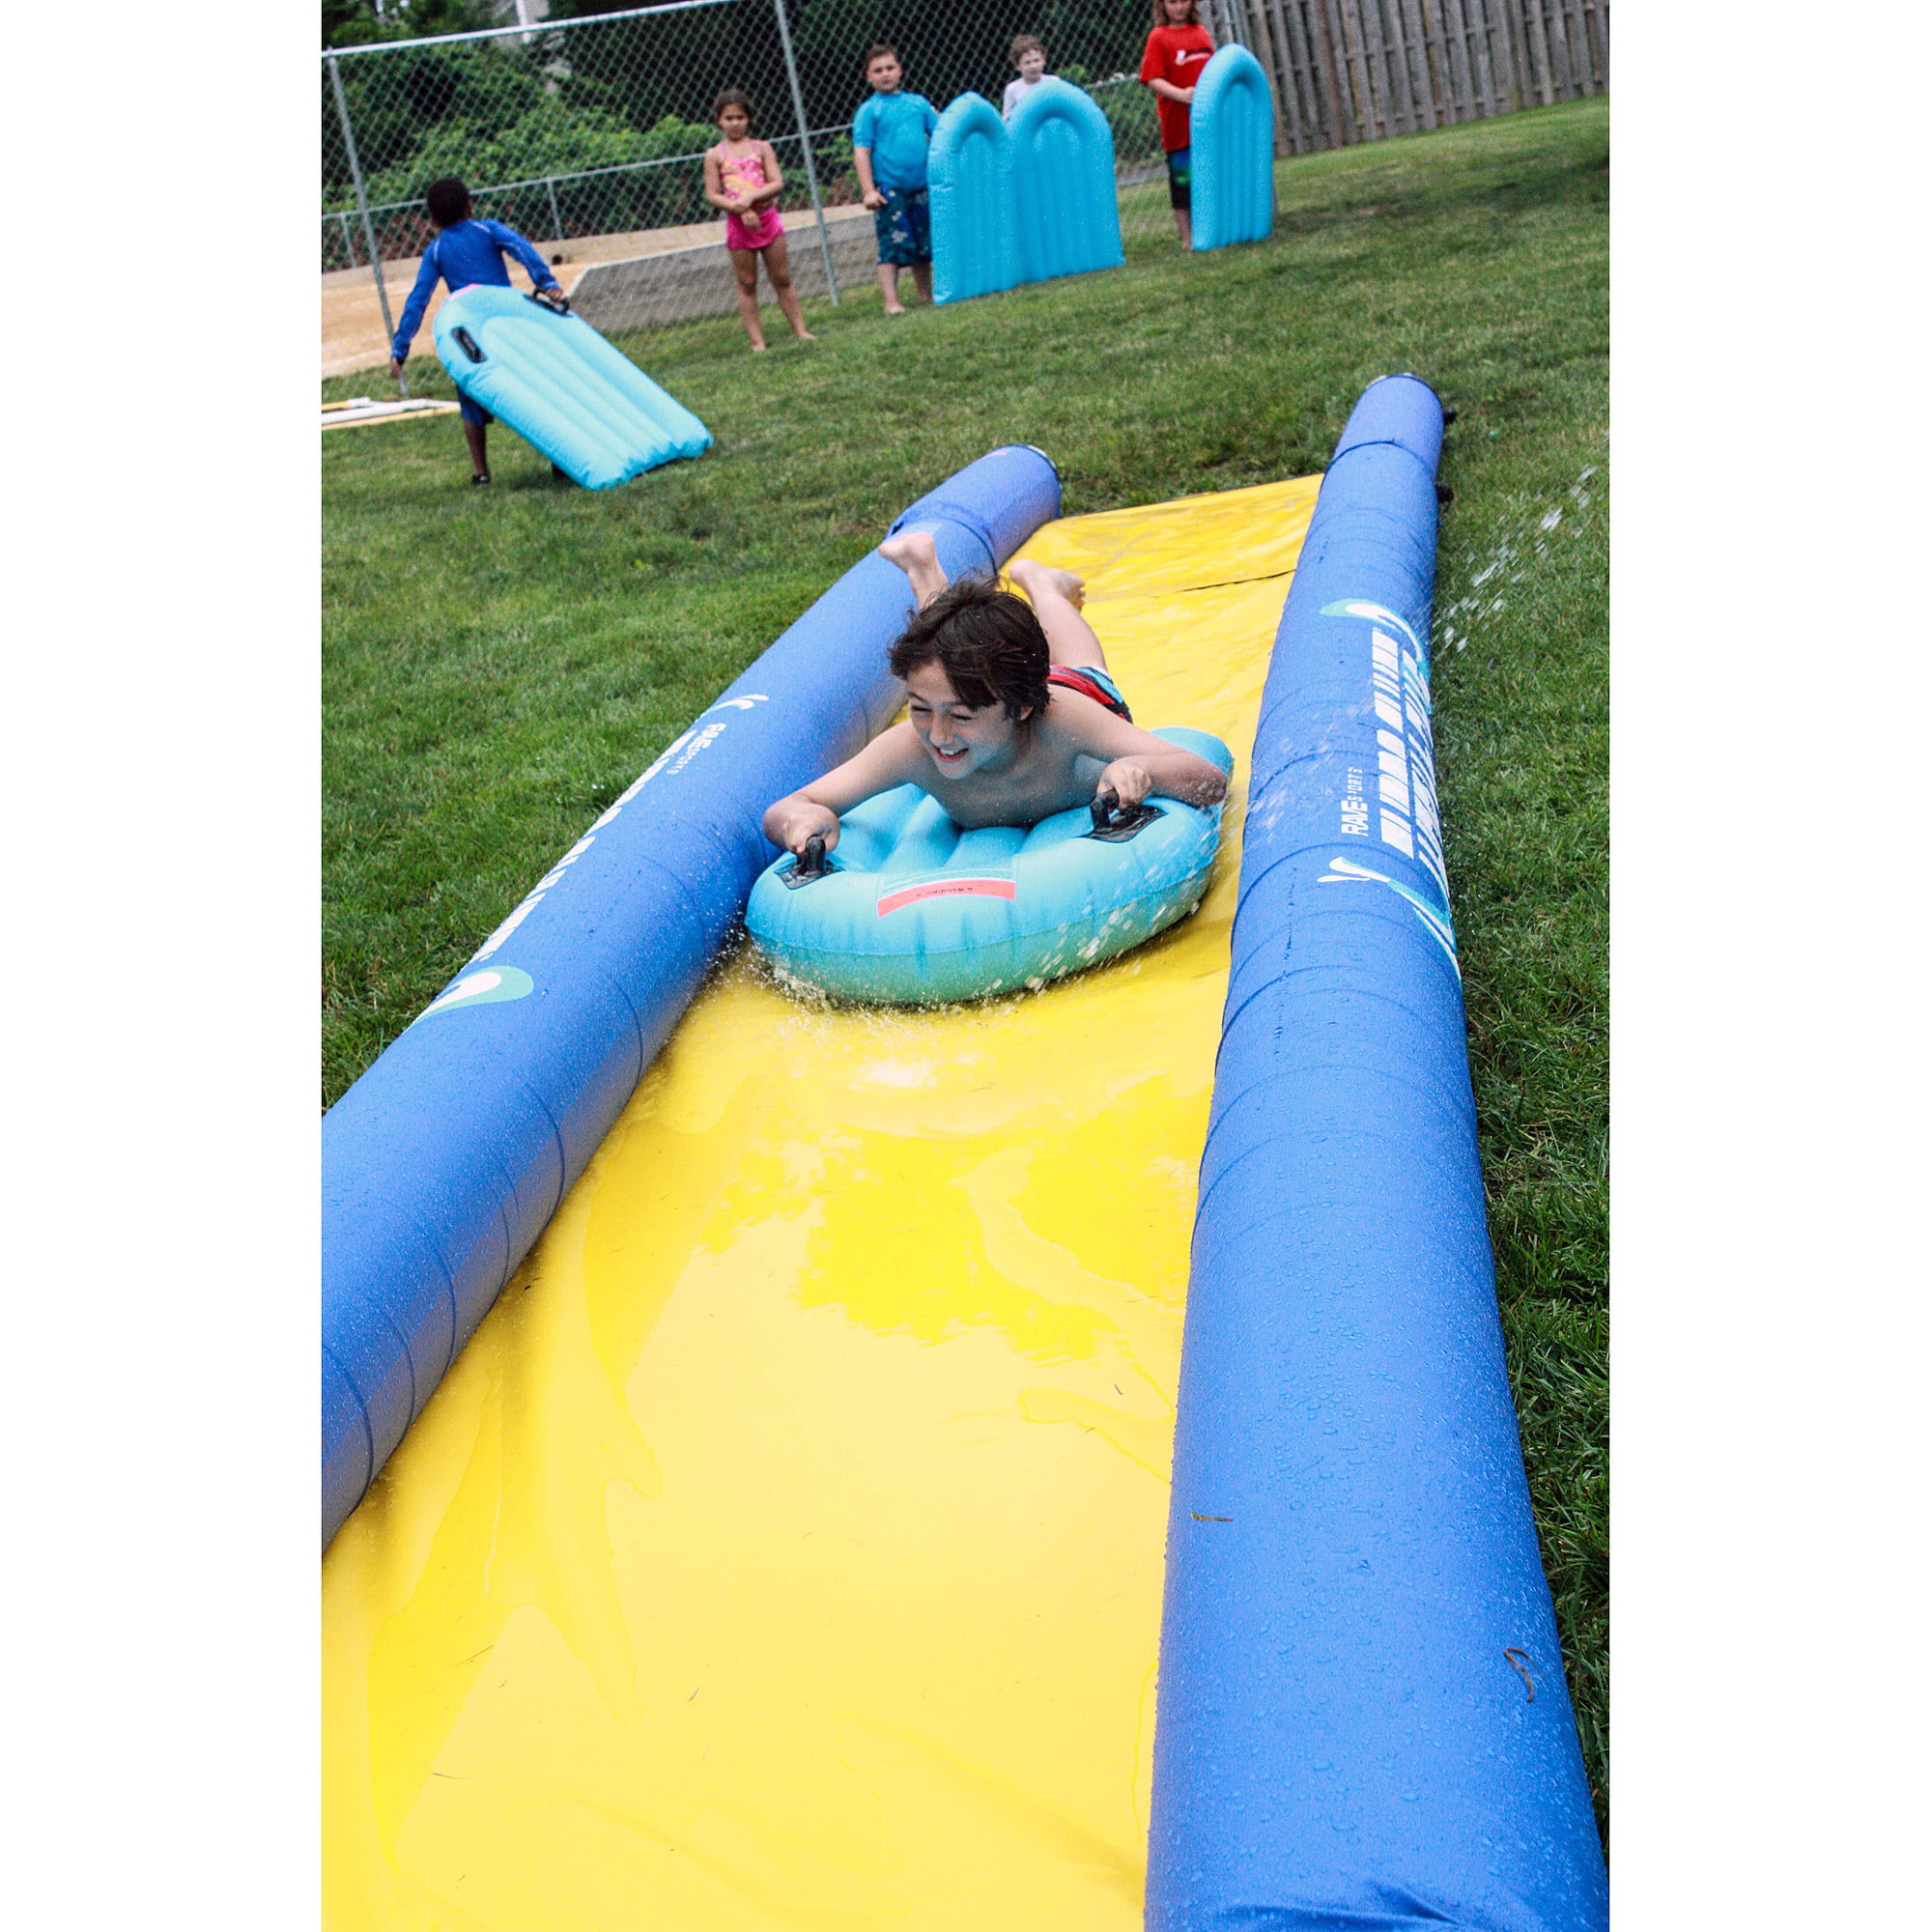 Rave Sports Turbo Chute Waterslide Backyard Package by Rave Sports